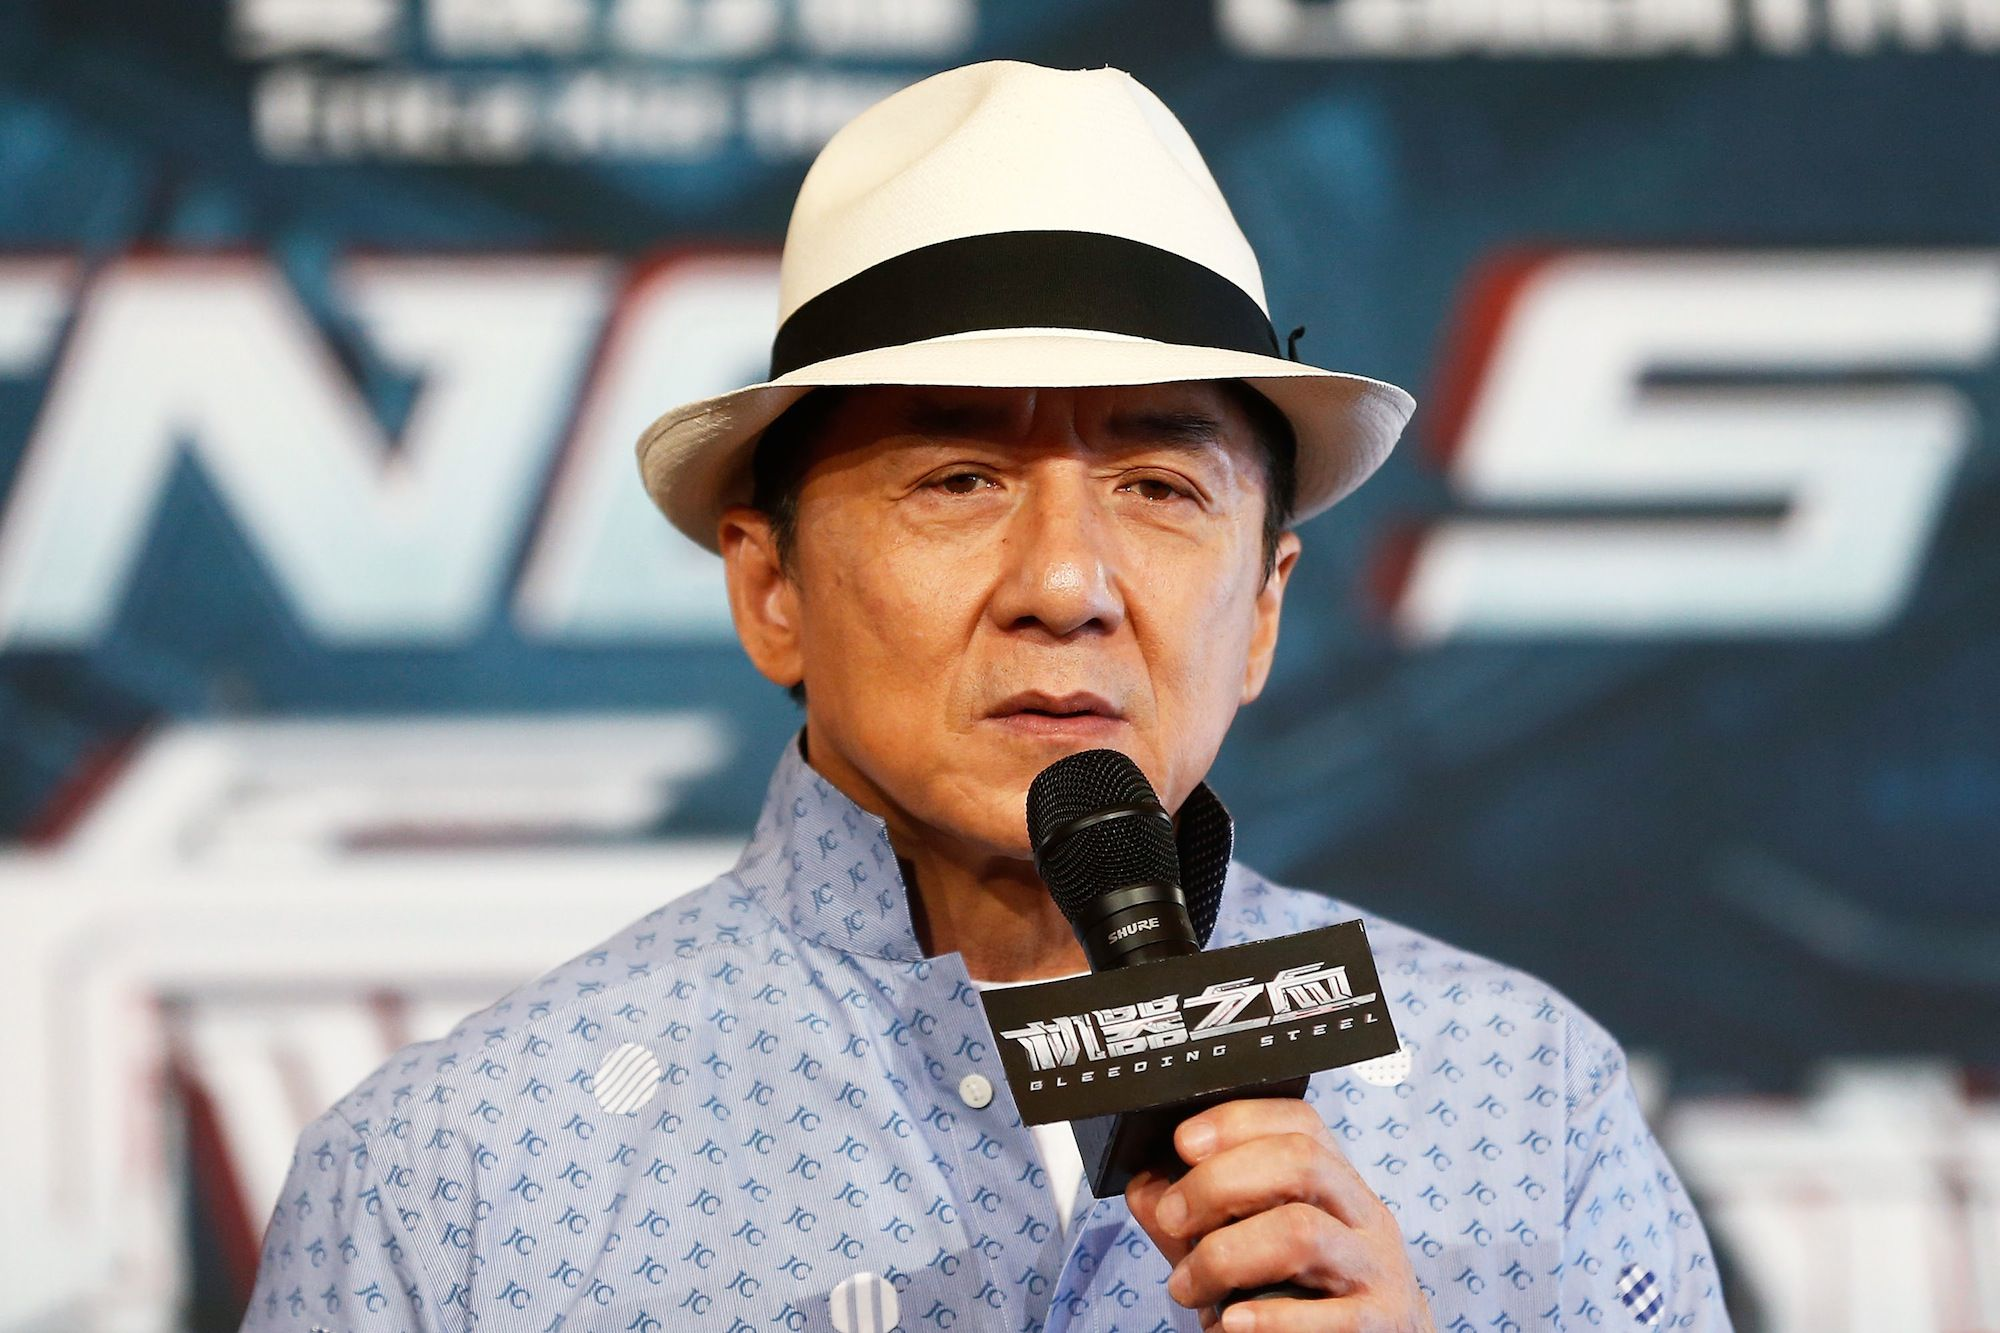 Jackie Chan - Biography and Age